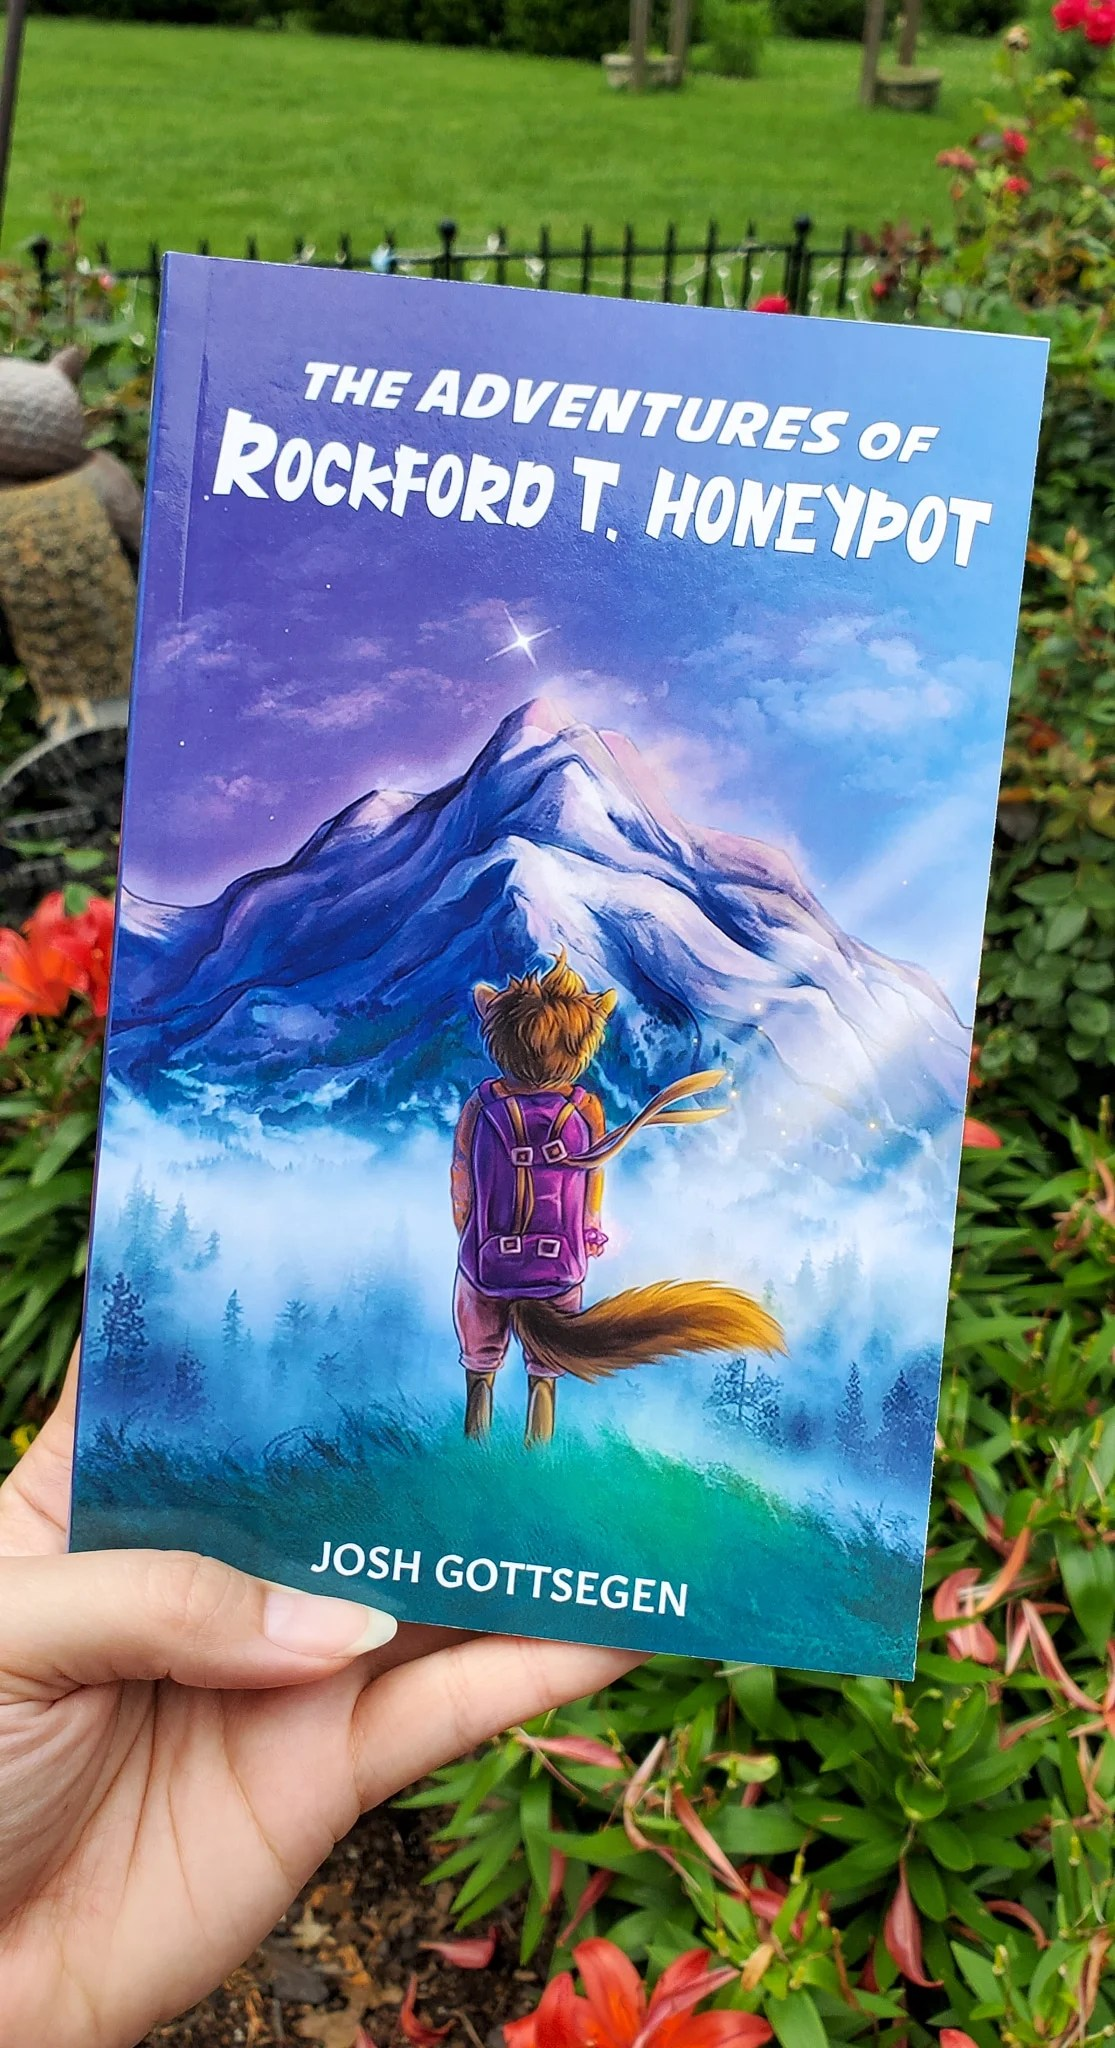 Read my full review of The Adventures of Rockford T. Honeypot book on my blog. This book is full of adventure, love, friendship, and more! The perfect book for kids young and old, add this book to your summer reading list today!